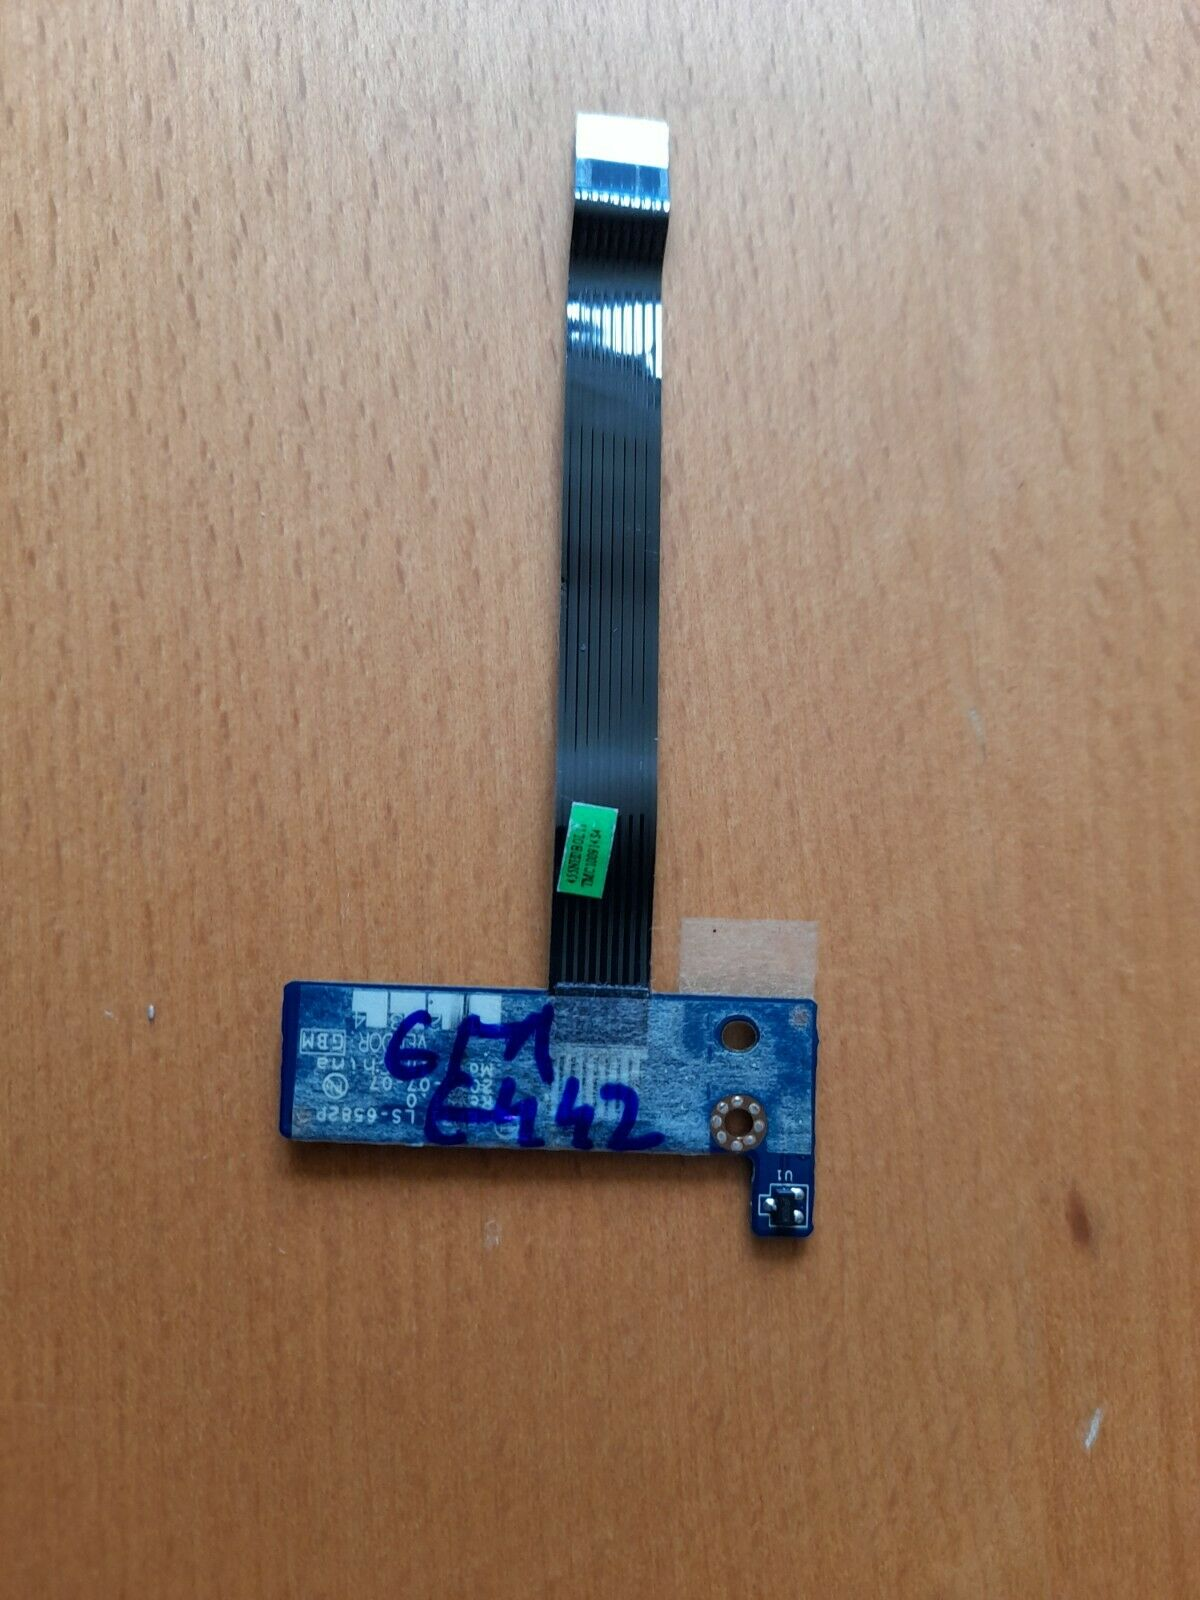 eMachines E442 Power Button Board and Cable